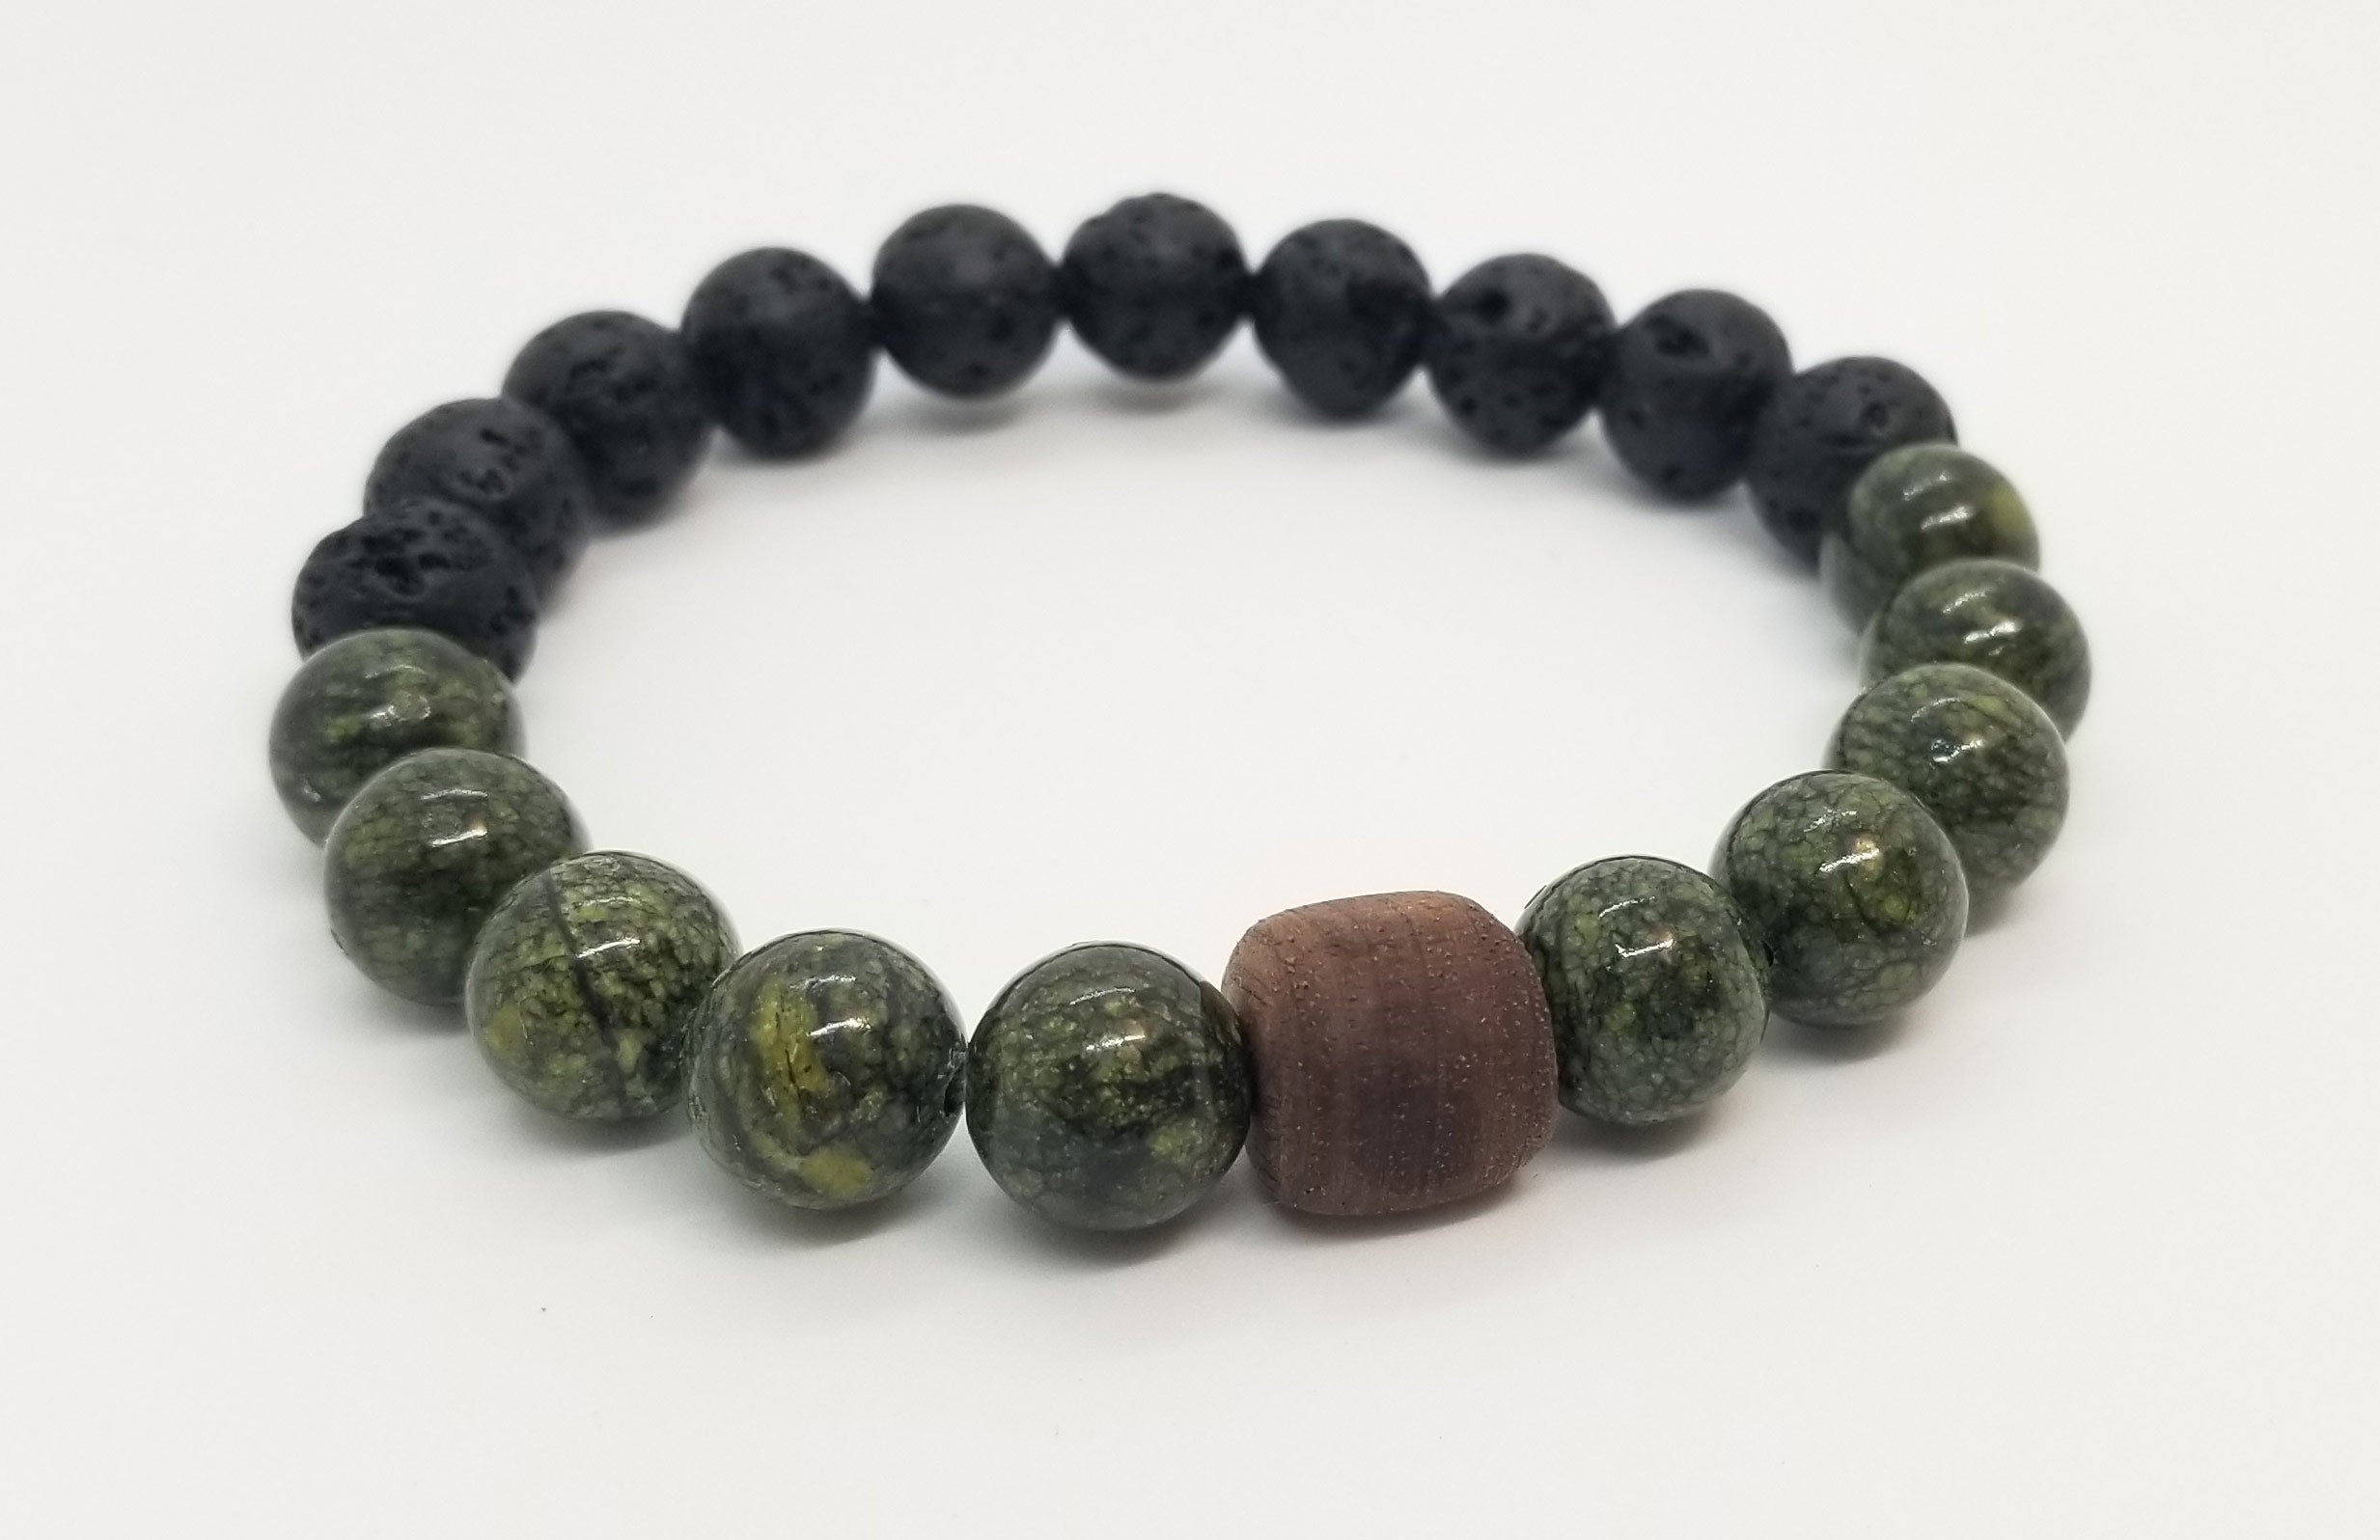 10mm Russian Jade and Lava with Wood Bead Bracelet